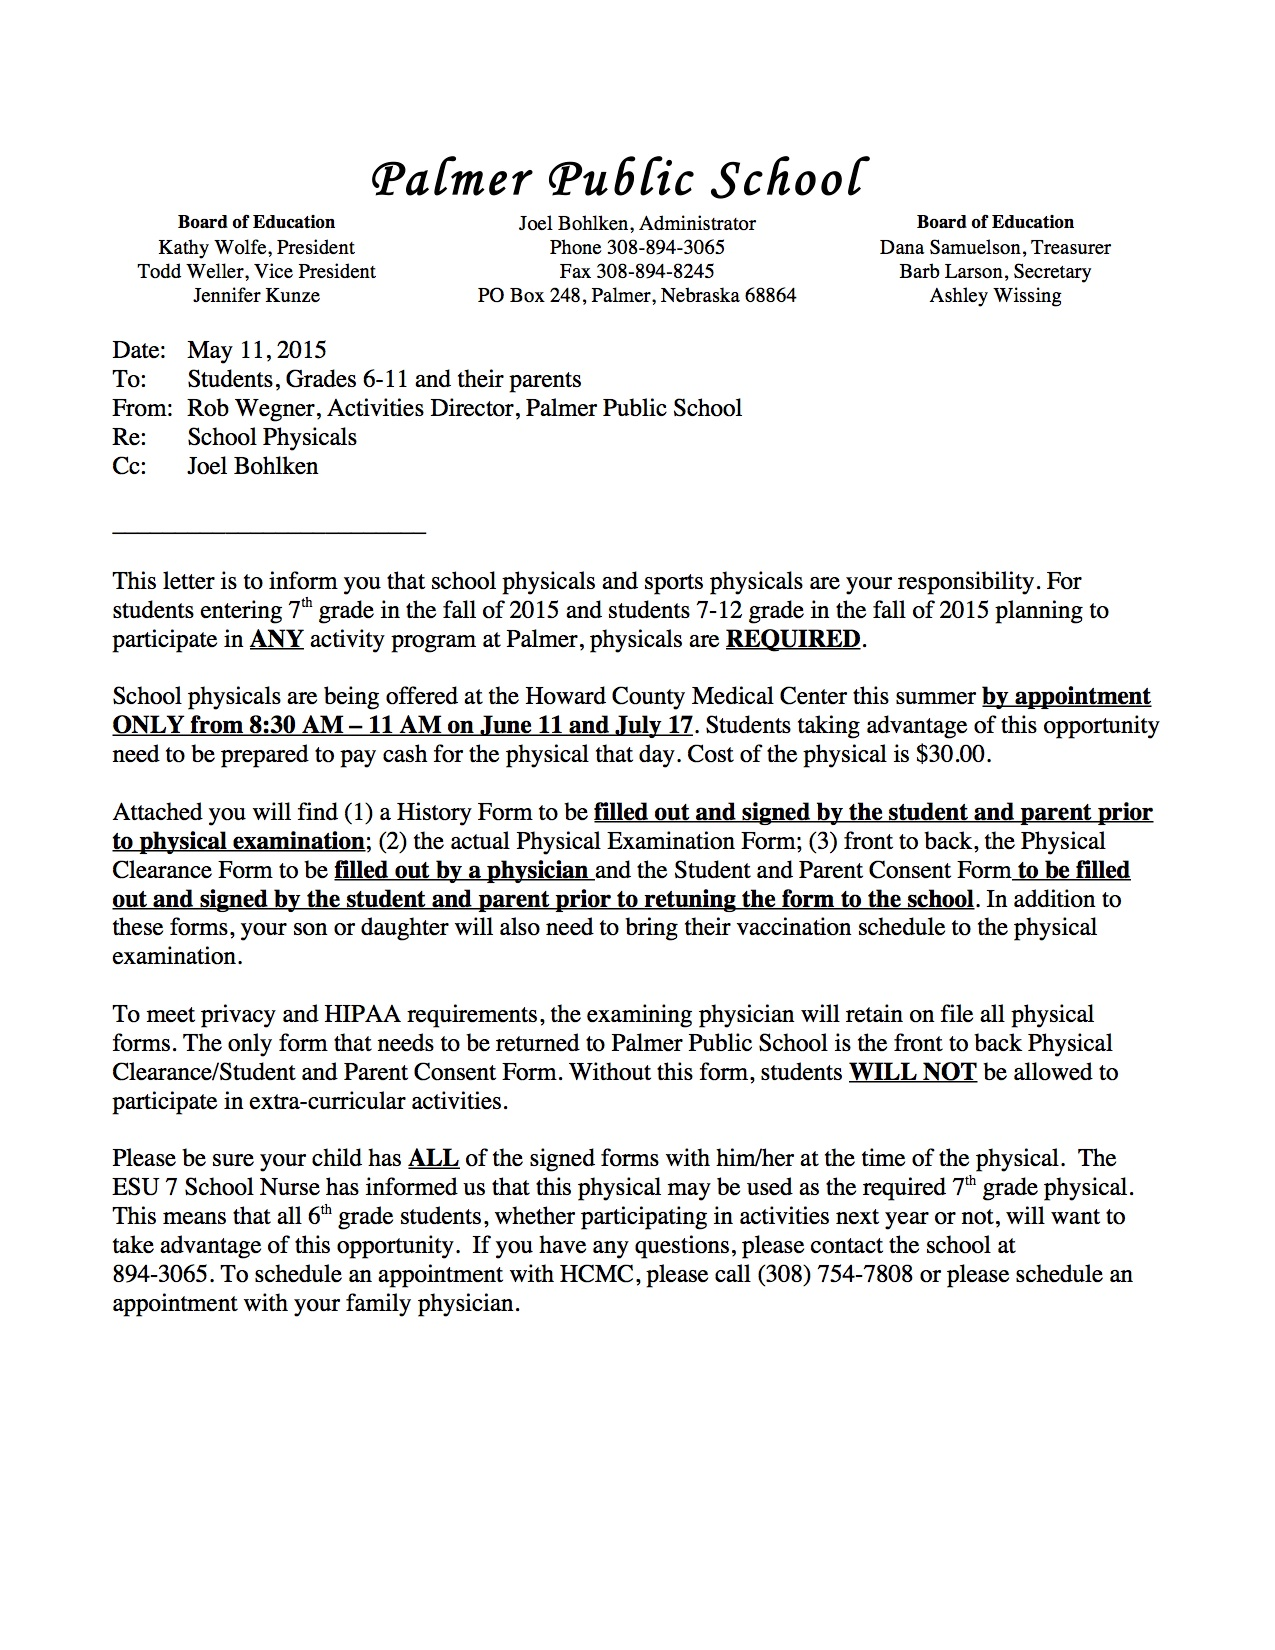 Palmer Public Schools - Physical & Consent Forms 2015-16 and ...